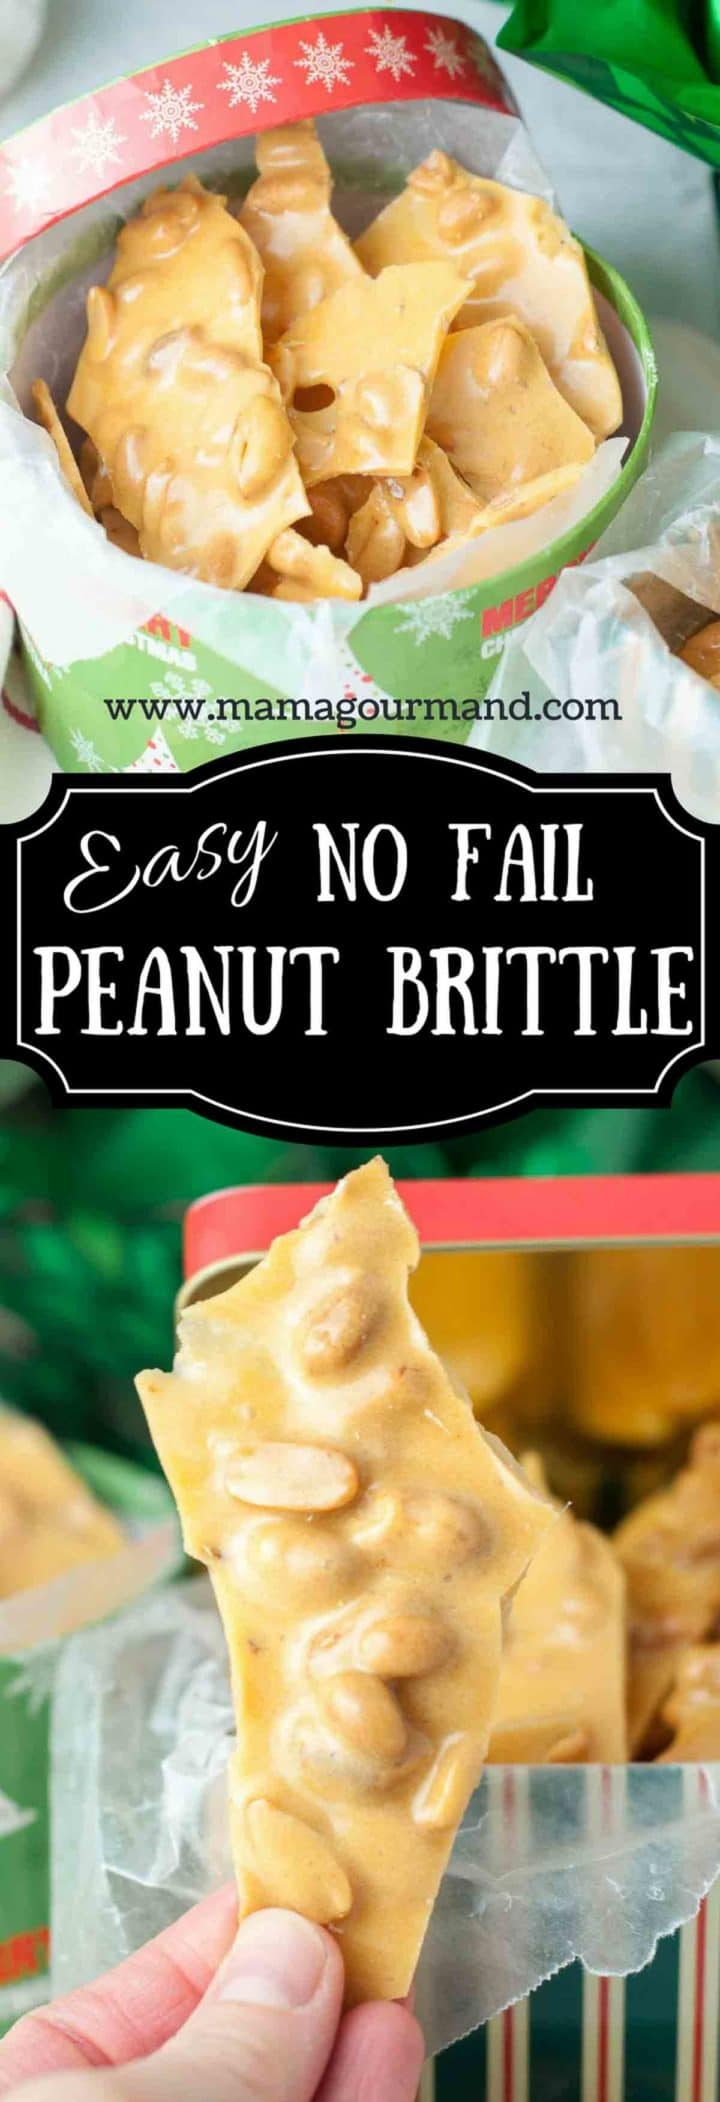 No Fail Peanut Brittle is an easy homemade snack that also makes the perfect holiday gift. https://www.mamagourmand.com